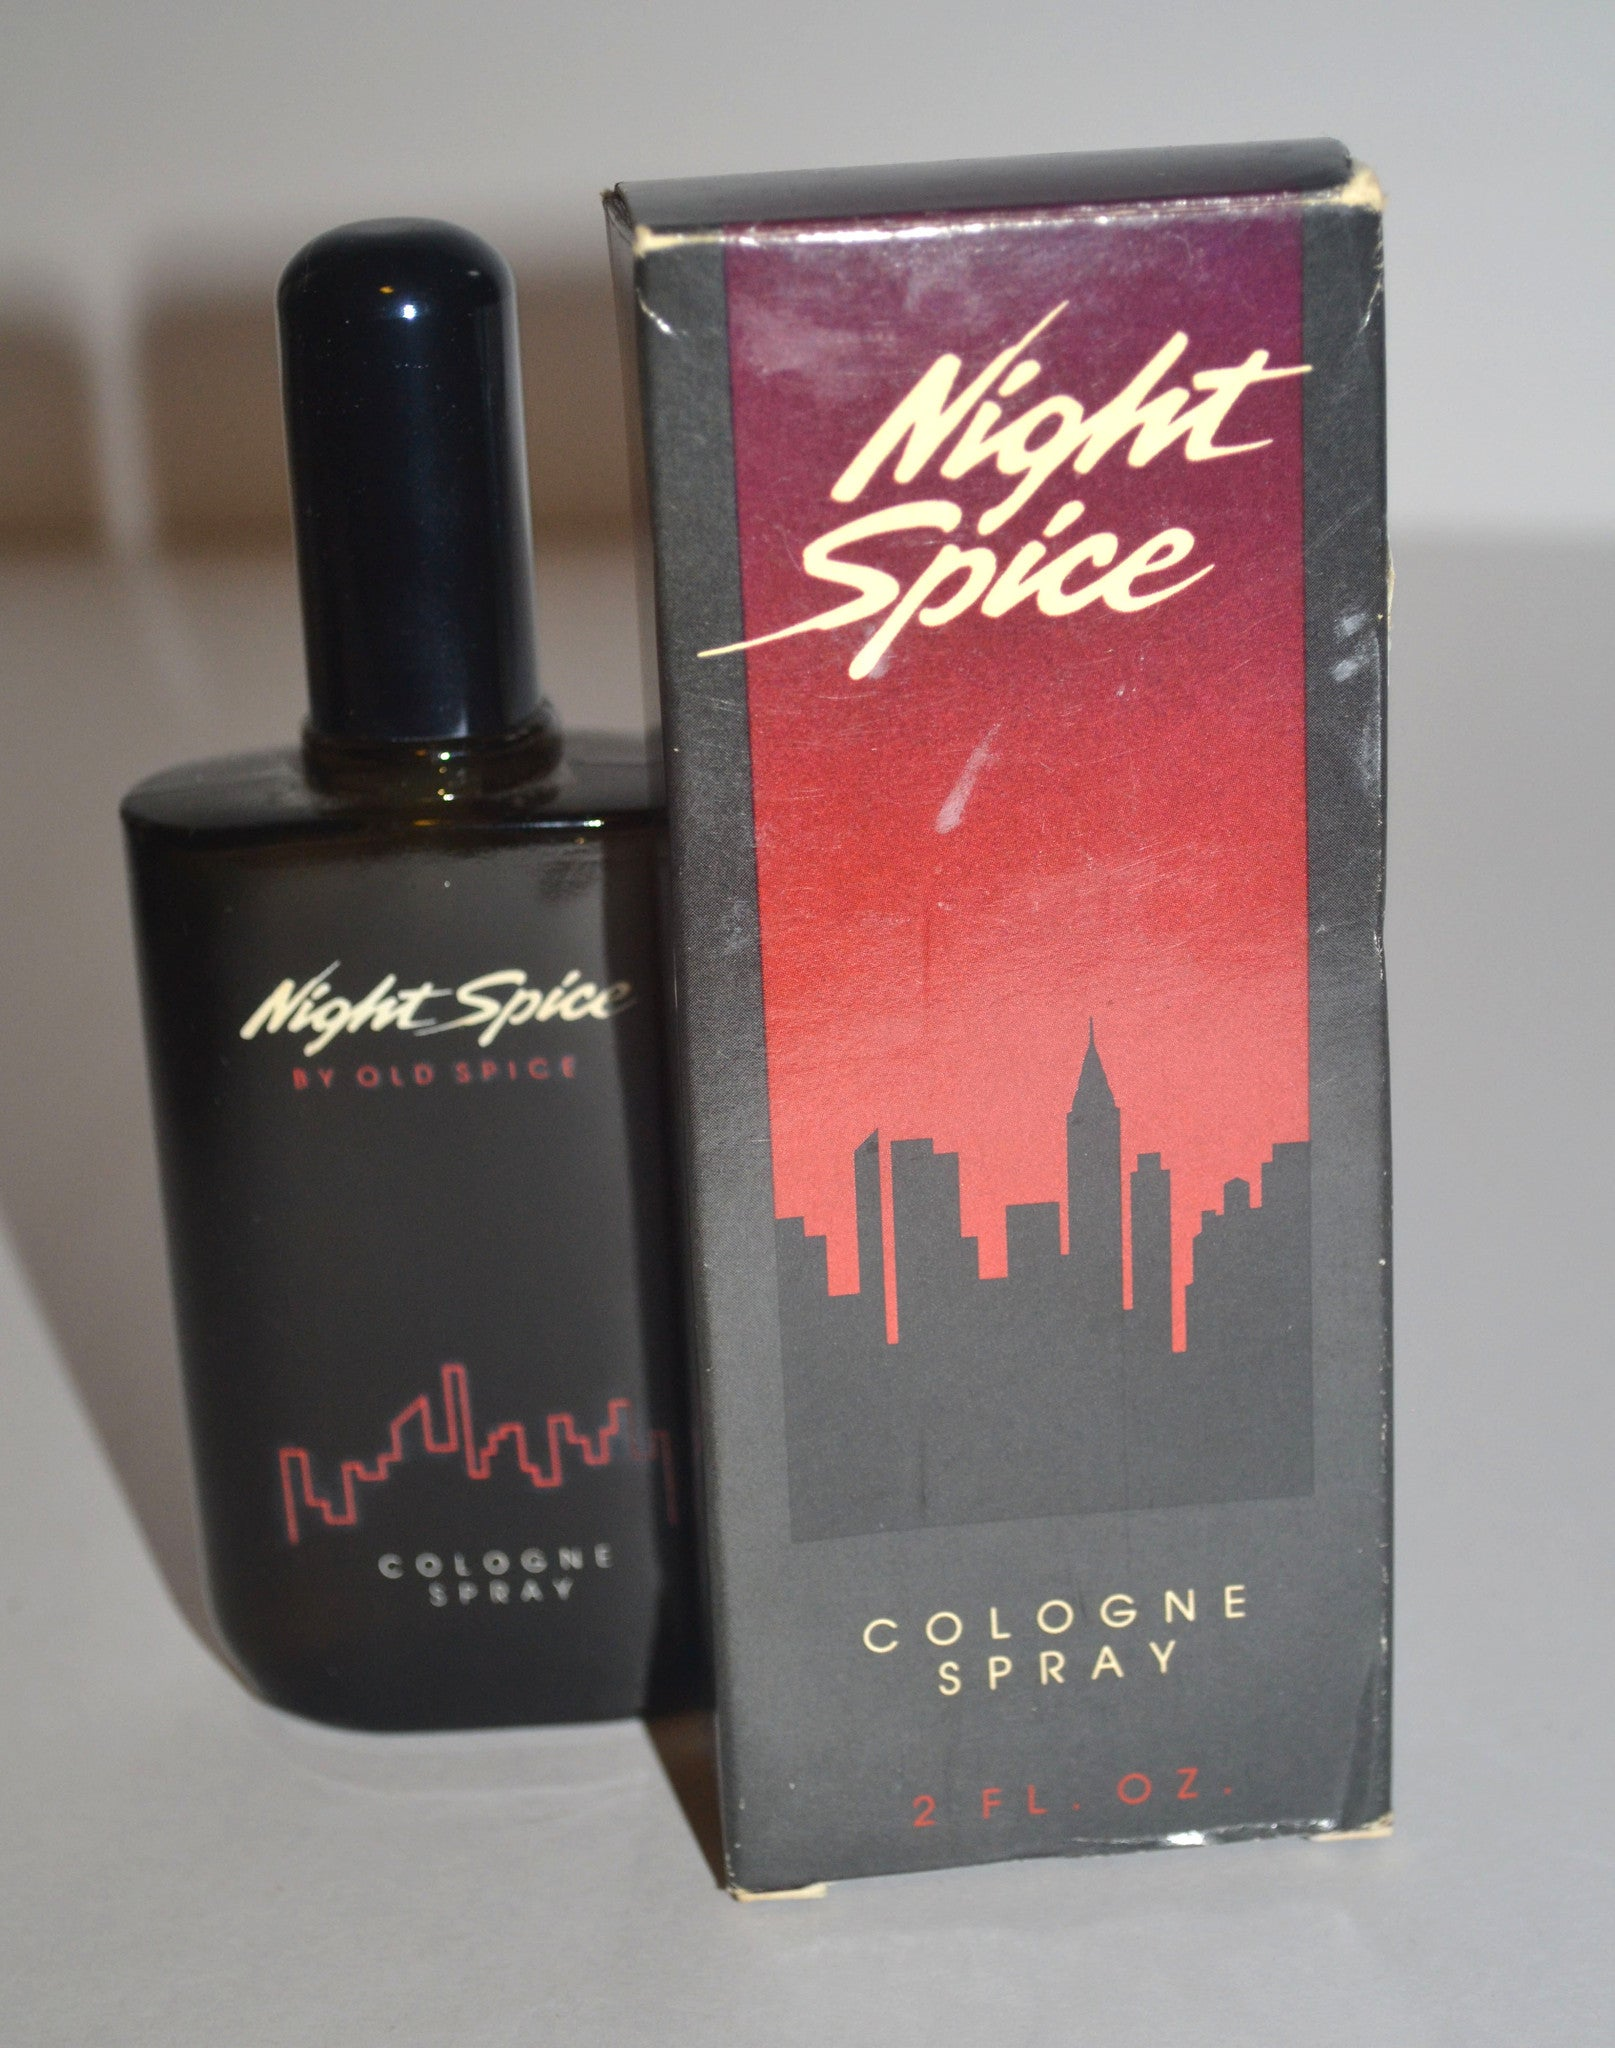 Night Spice Old Spice Cologne By Shulton